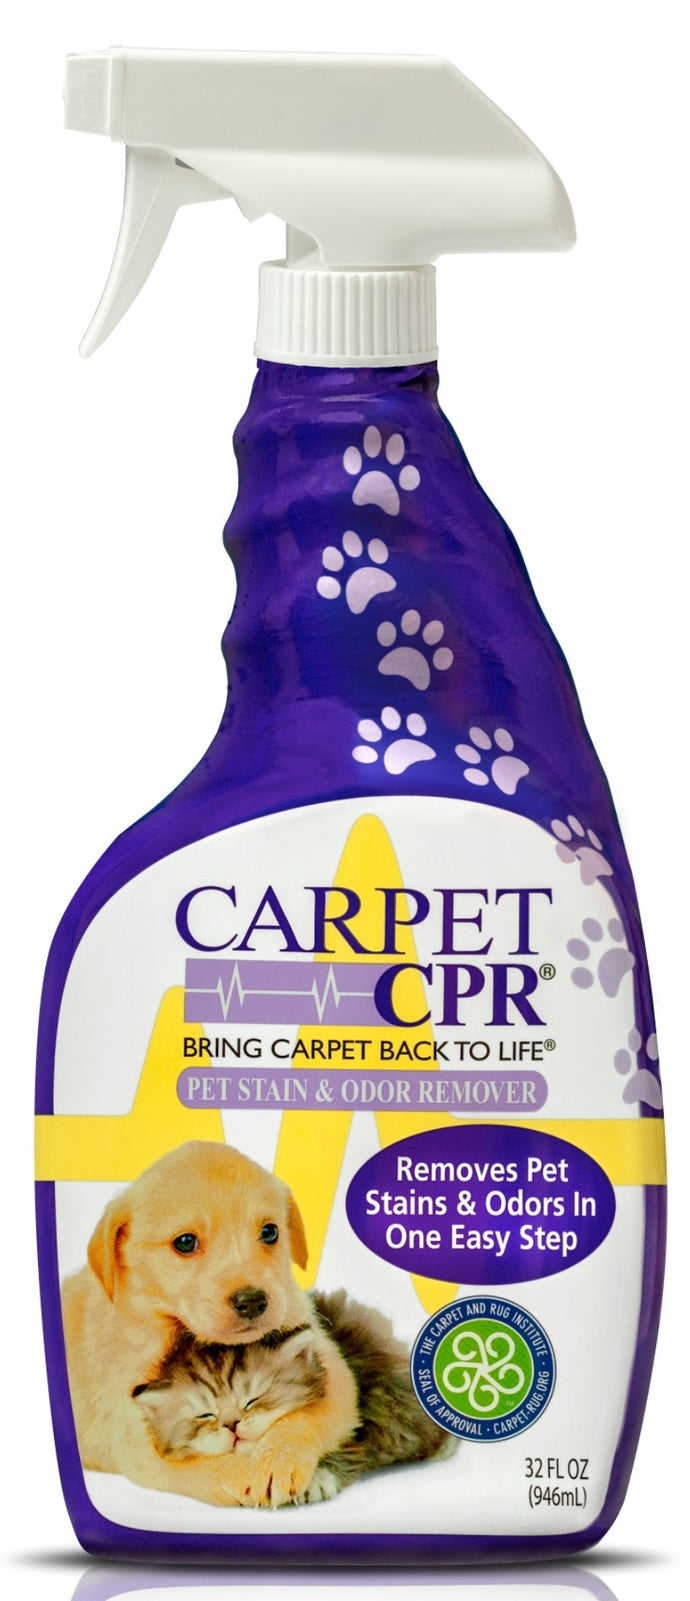 Carpet CPR Pet Stain & Odor Remover 32oz